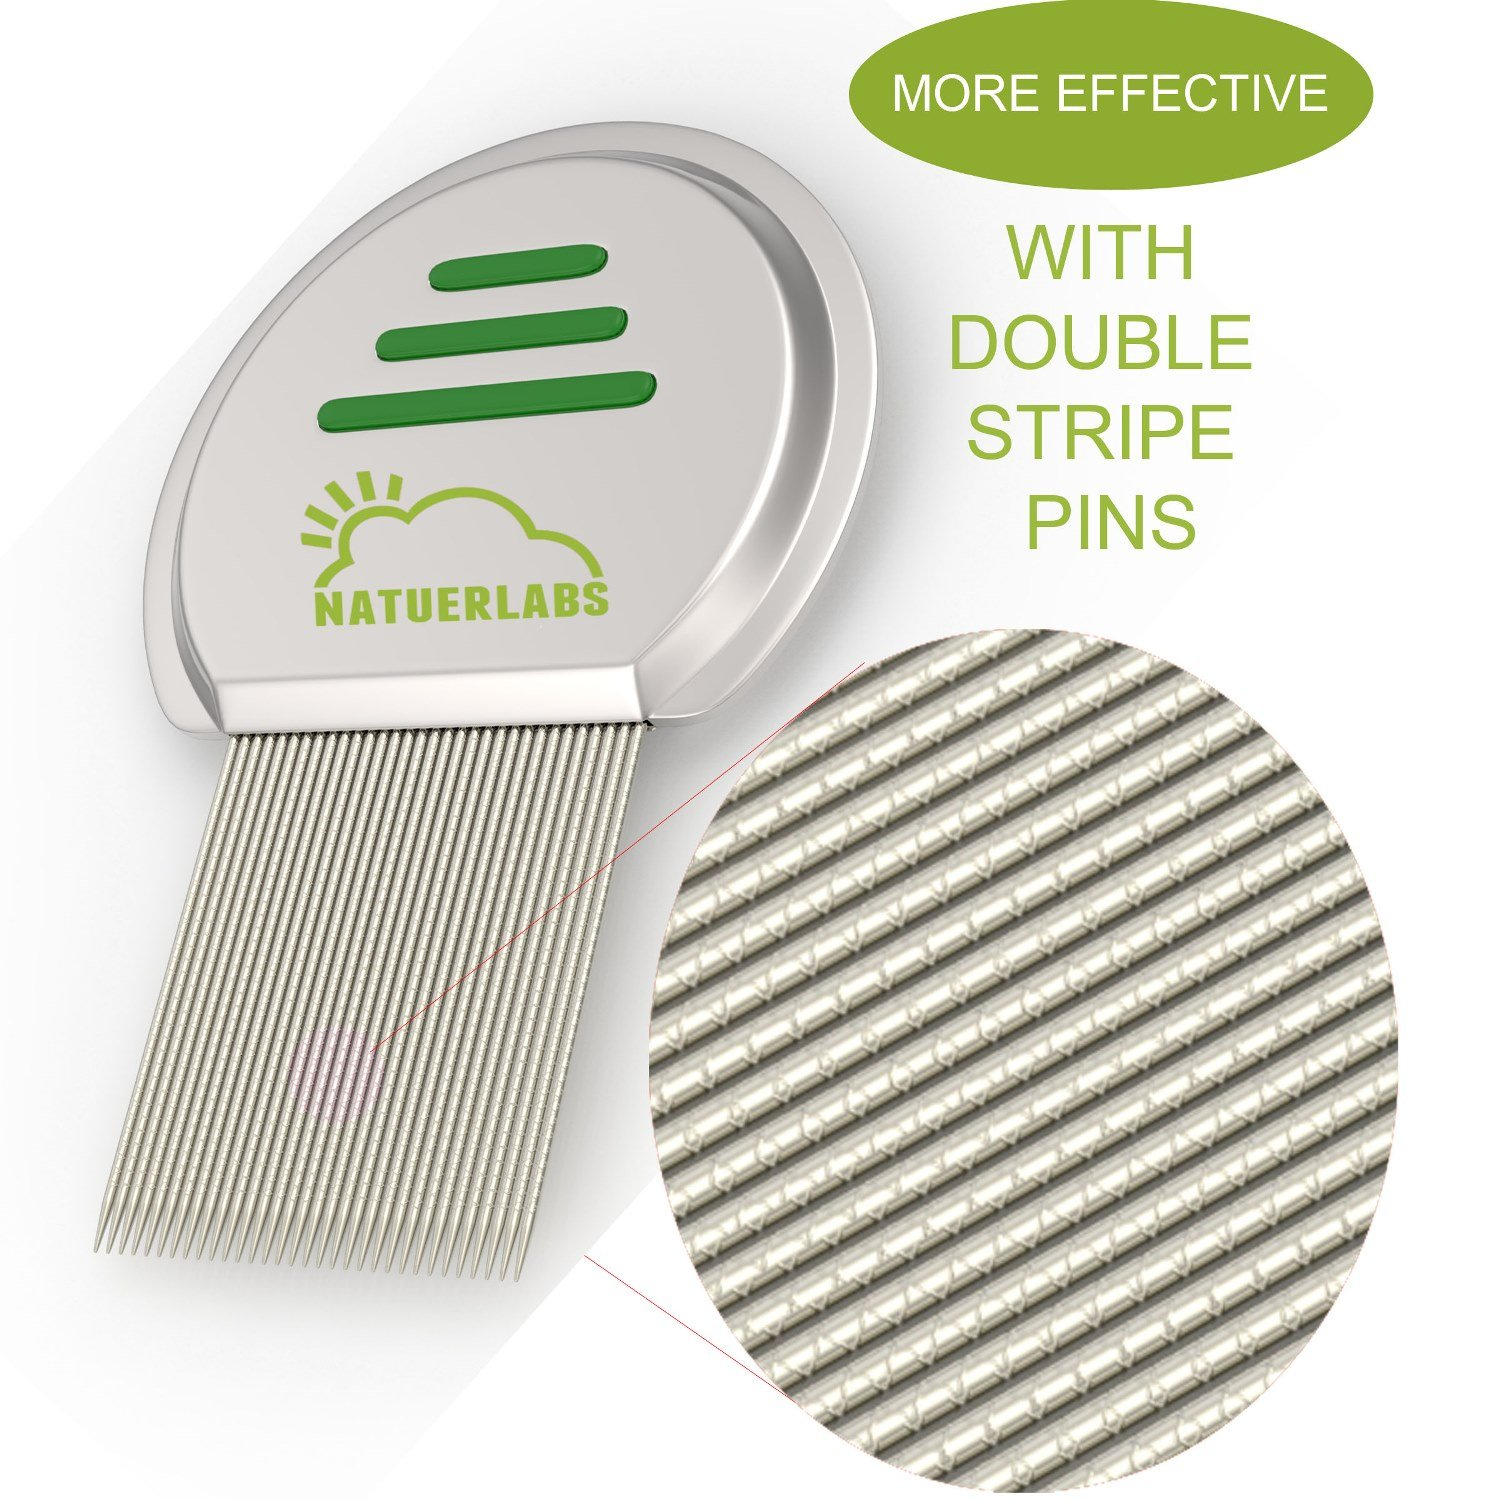 Metal Nit & Lice Comb - Safely & Easily Removes Nits & Head Lices with 33 Double Stripe Pins - More Effective Louse Removal Than Single Stripe Combs. The Best Head Lice Treatment on the Market (1)